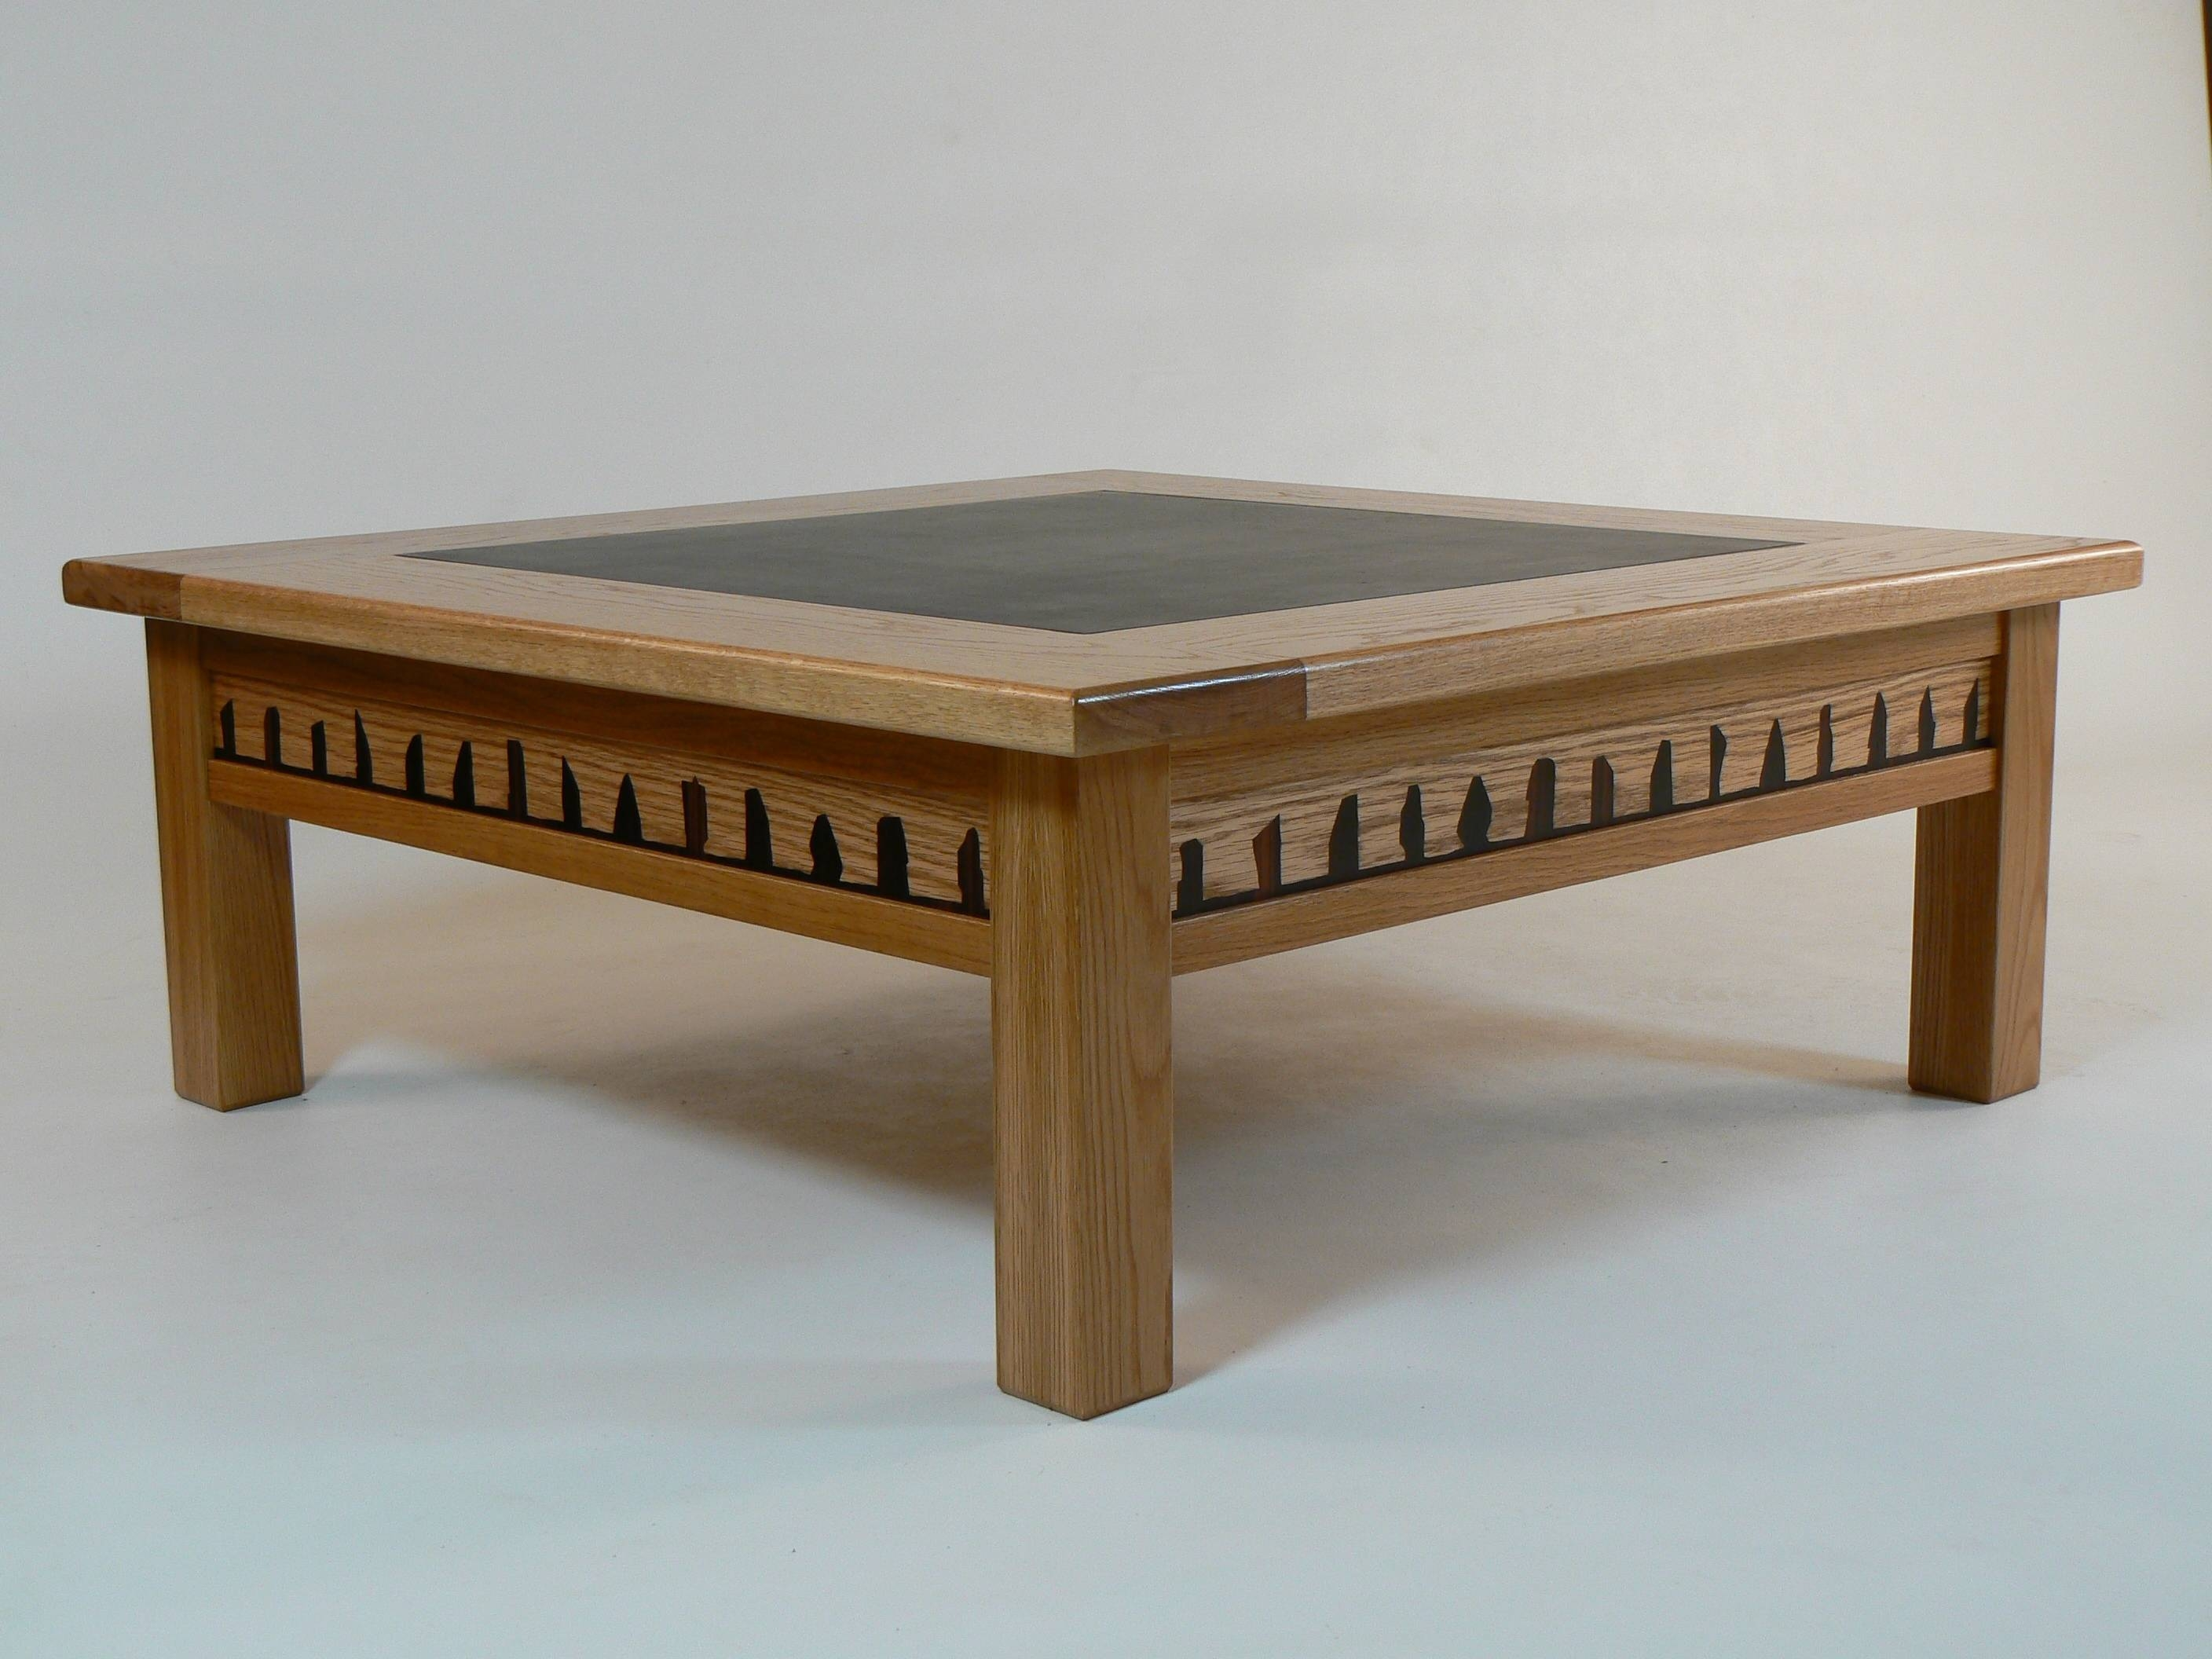 Large Square Coffee Tables – Square Coffee Tables Auckland, Large in Large Square Wood Coffee Tables (Image 20 of 30)